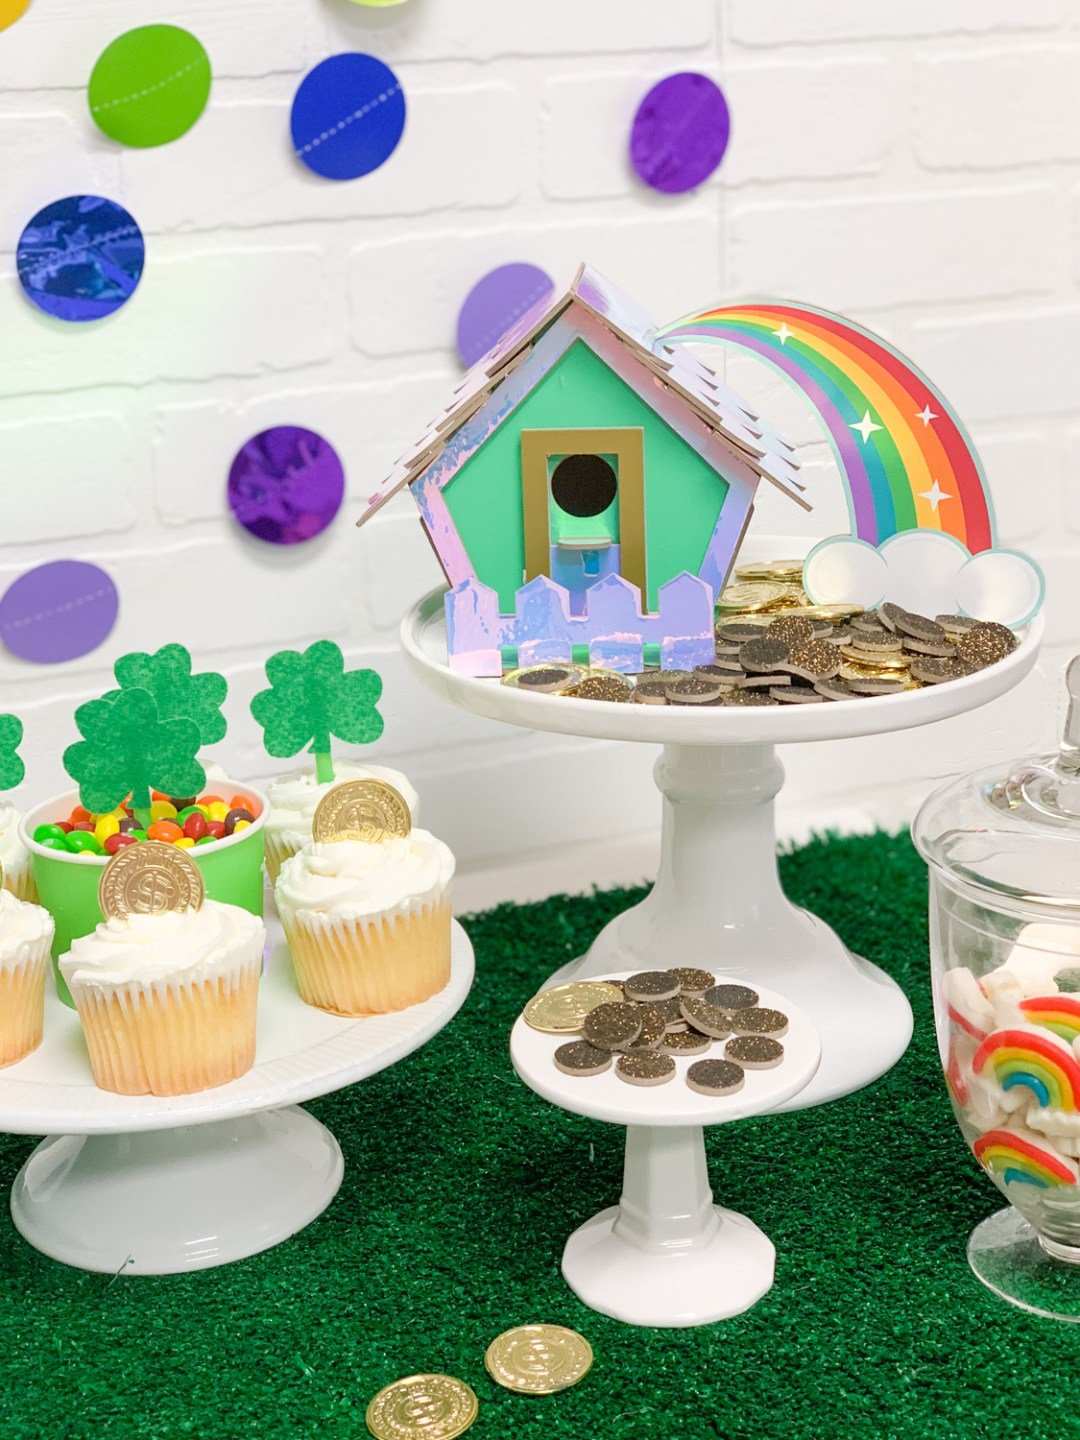 St. Patrick's Day Celebration Gold Coins Cupcakes